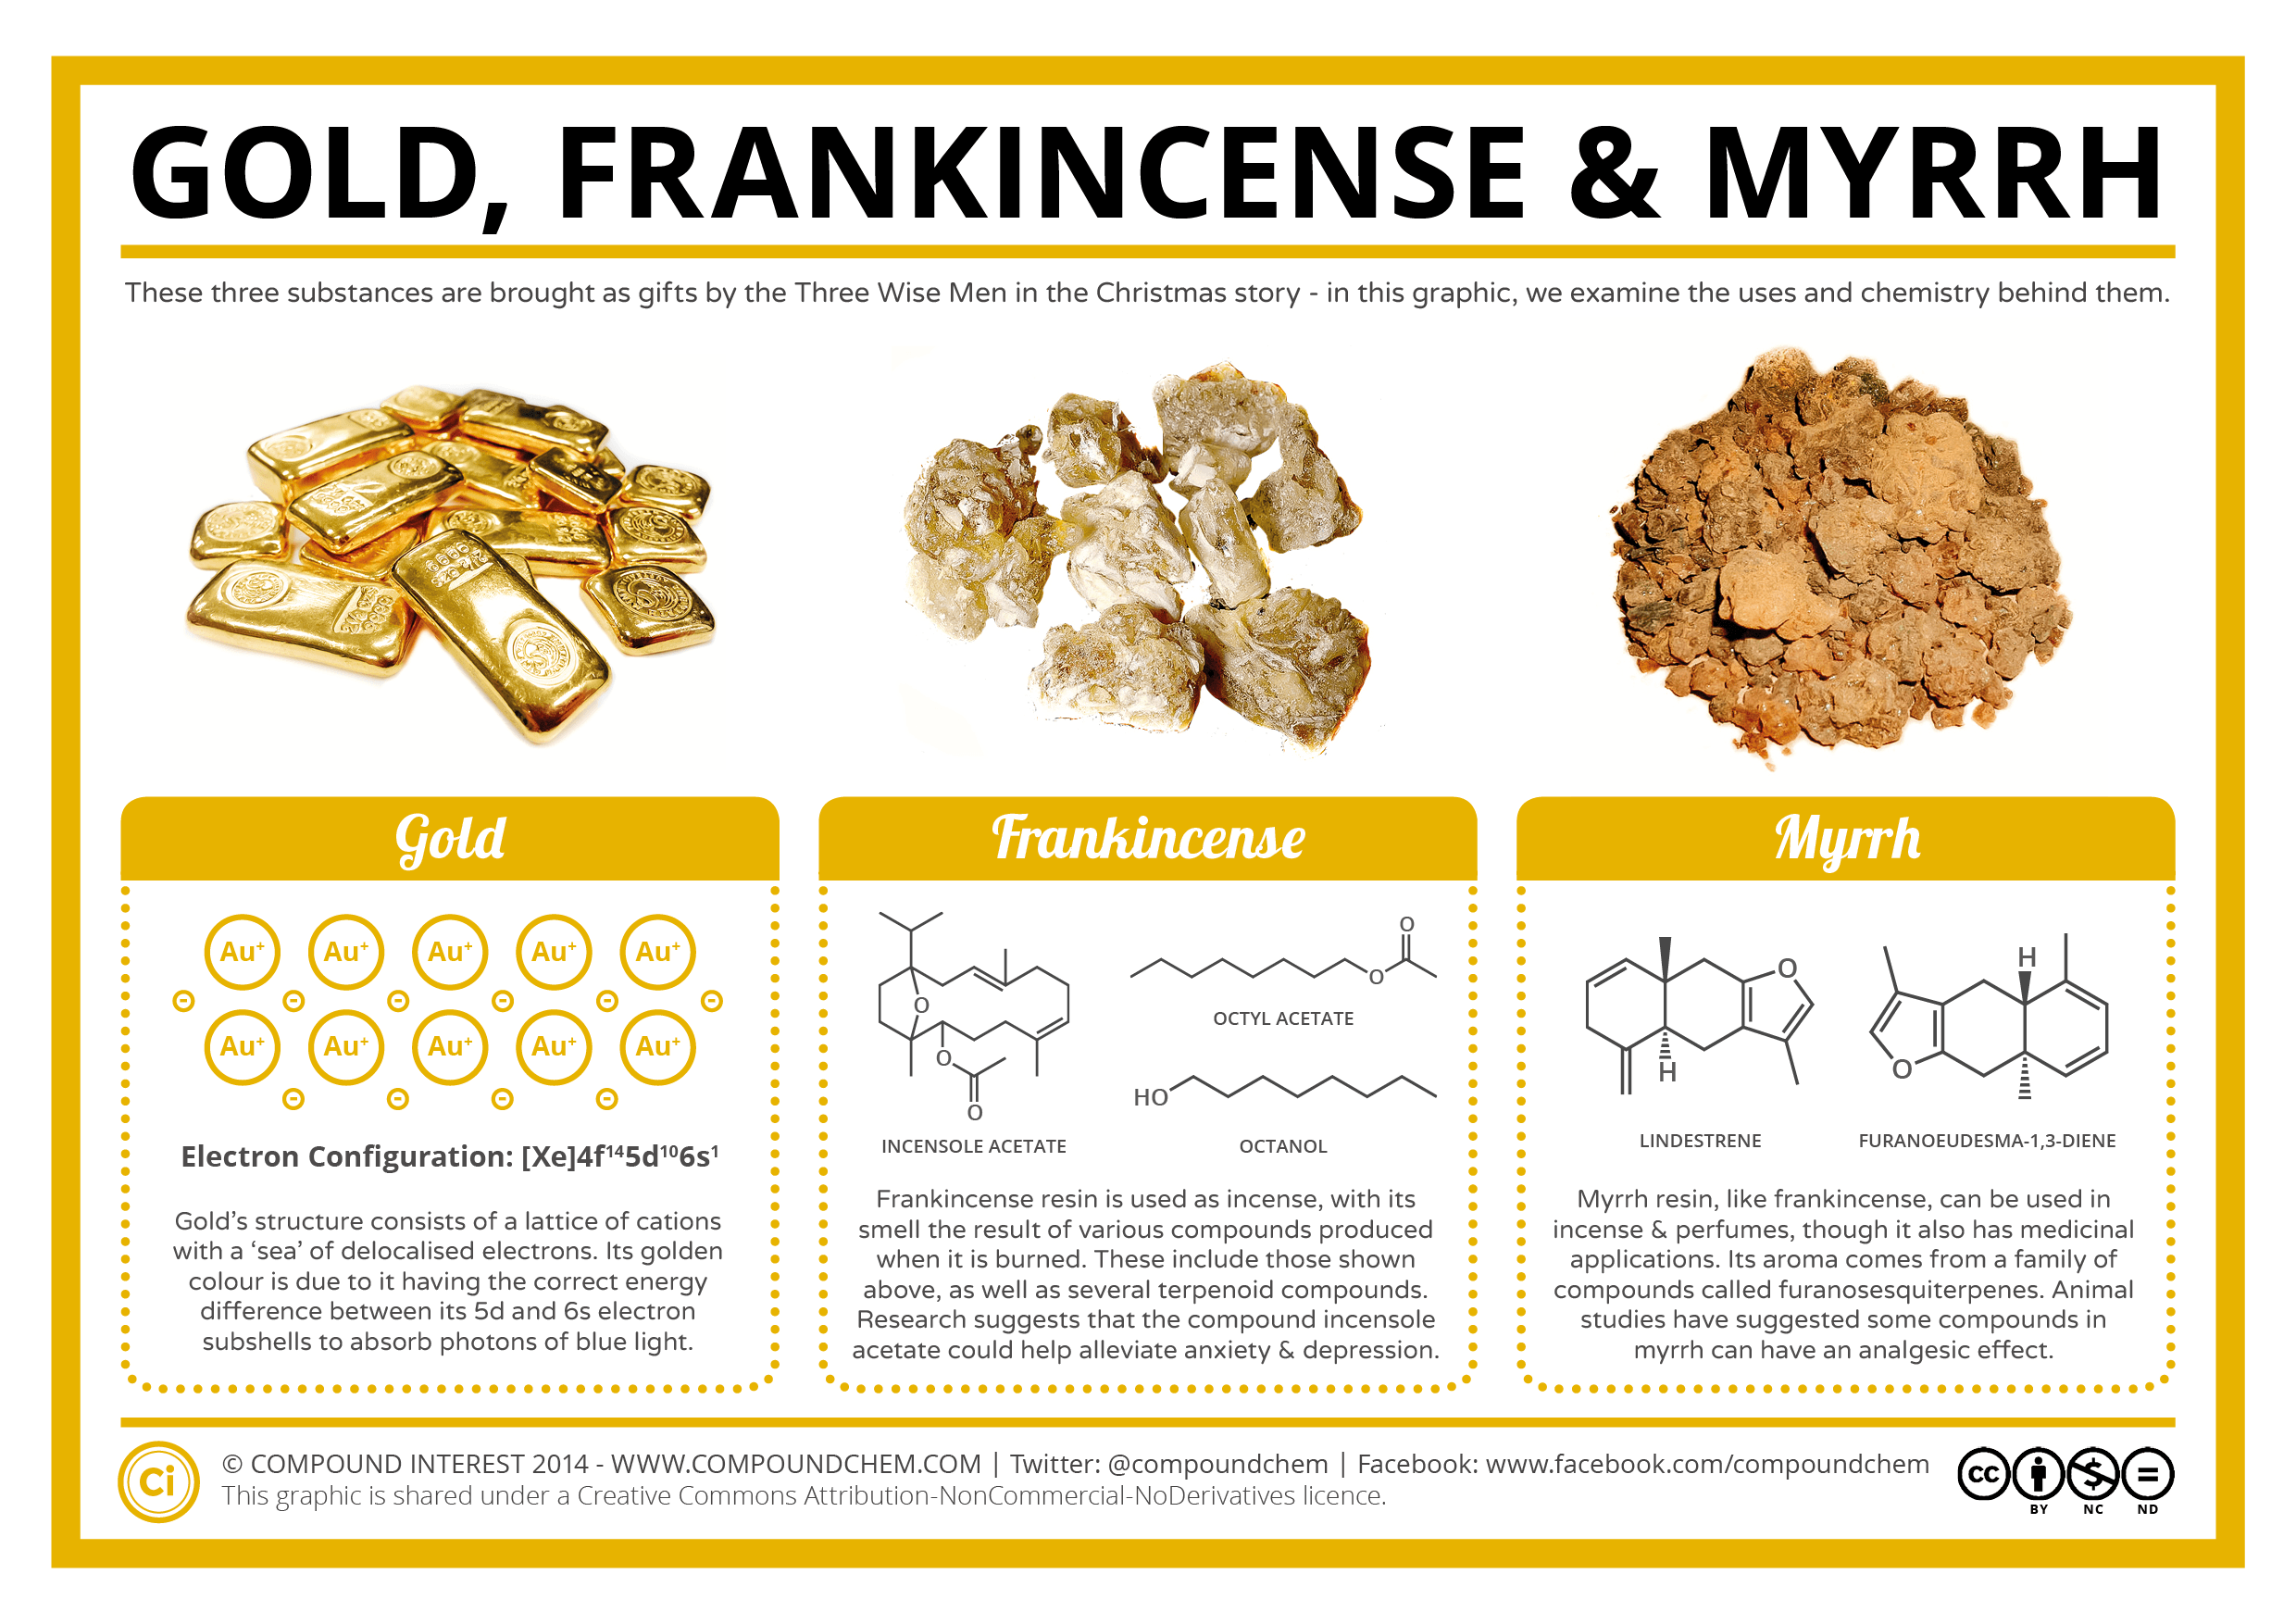 The-Chemistry-of-Gold-Frankincense-Myrrh